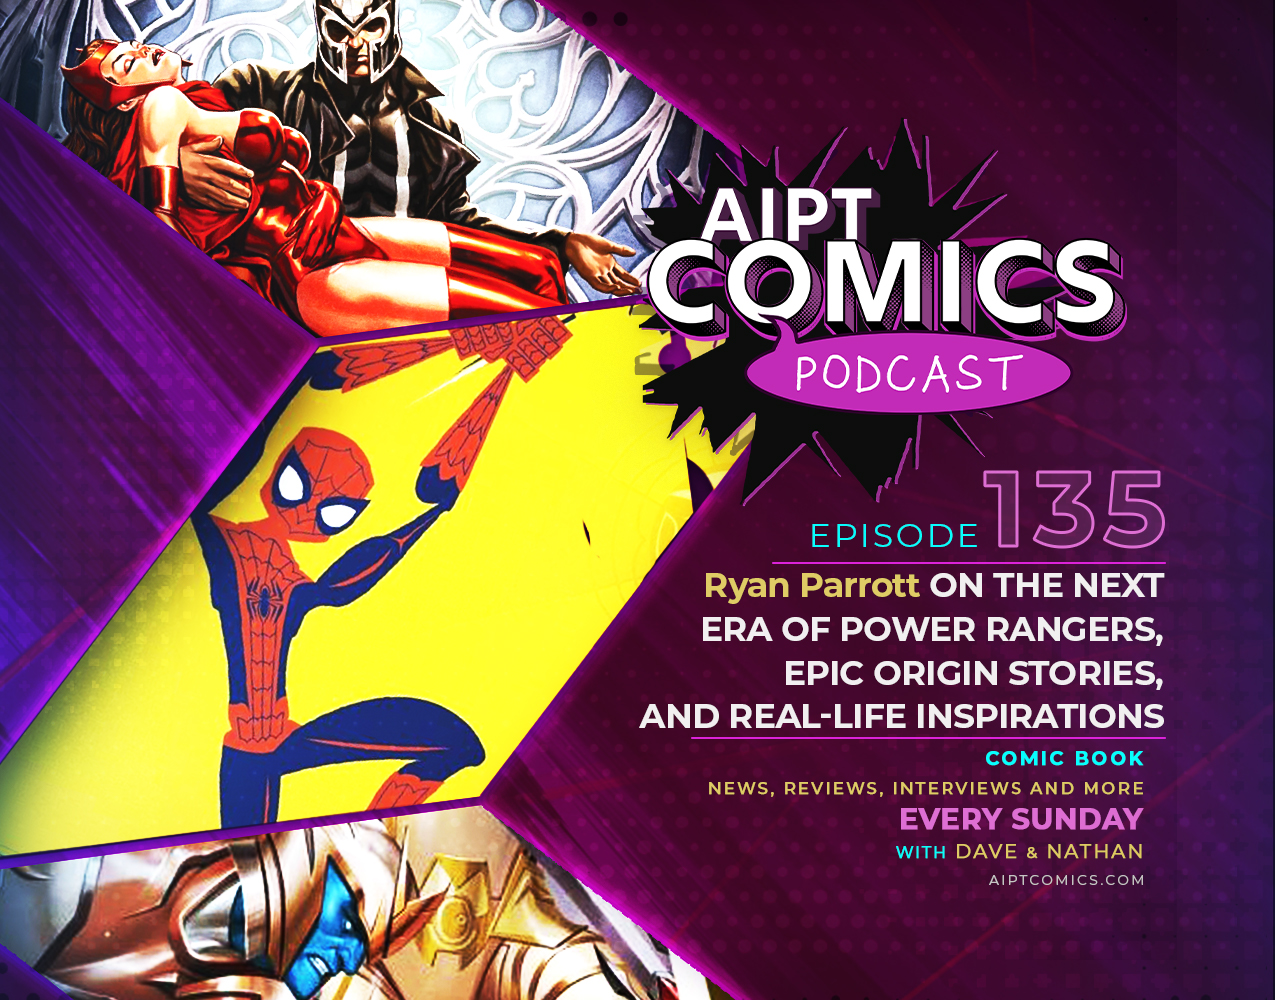 AIPT Comics podcast episode 135: Ryan Parrott on the next era of Power Rangers, epic origin stories, and real-life inspirations